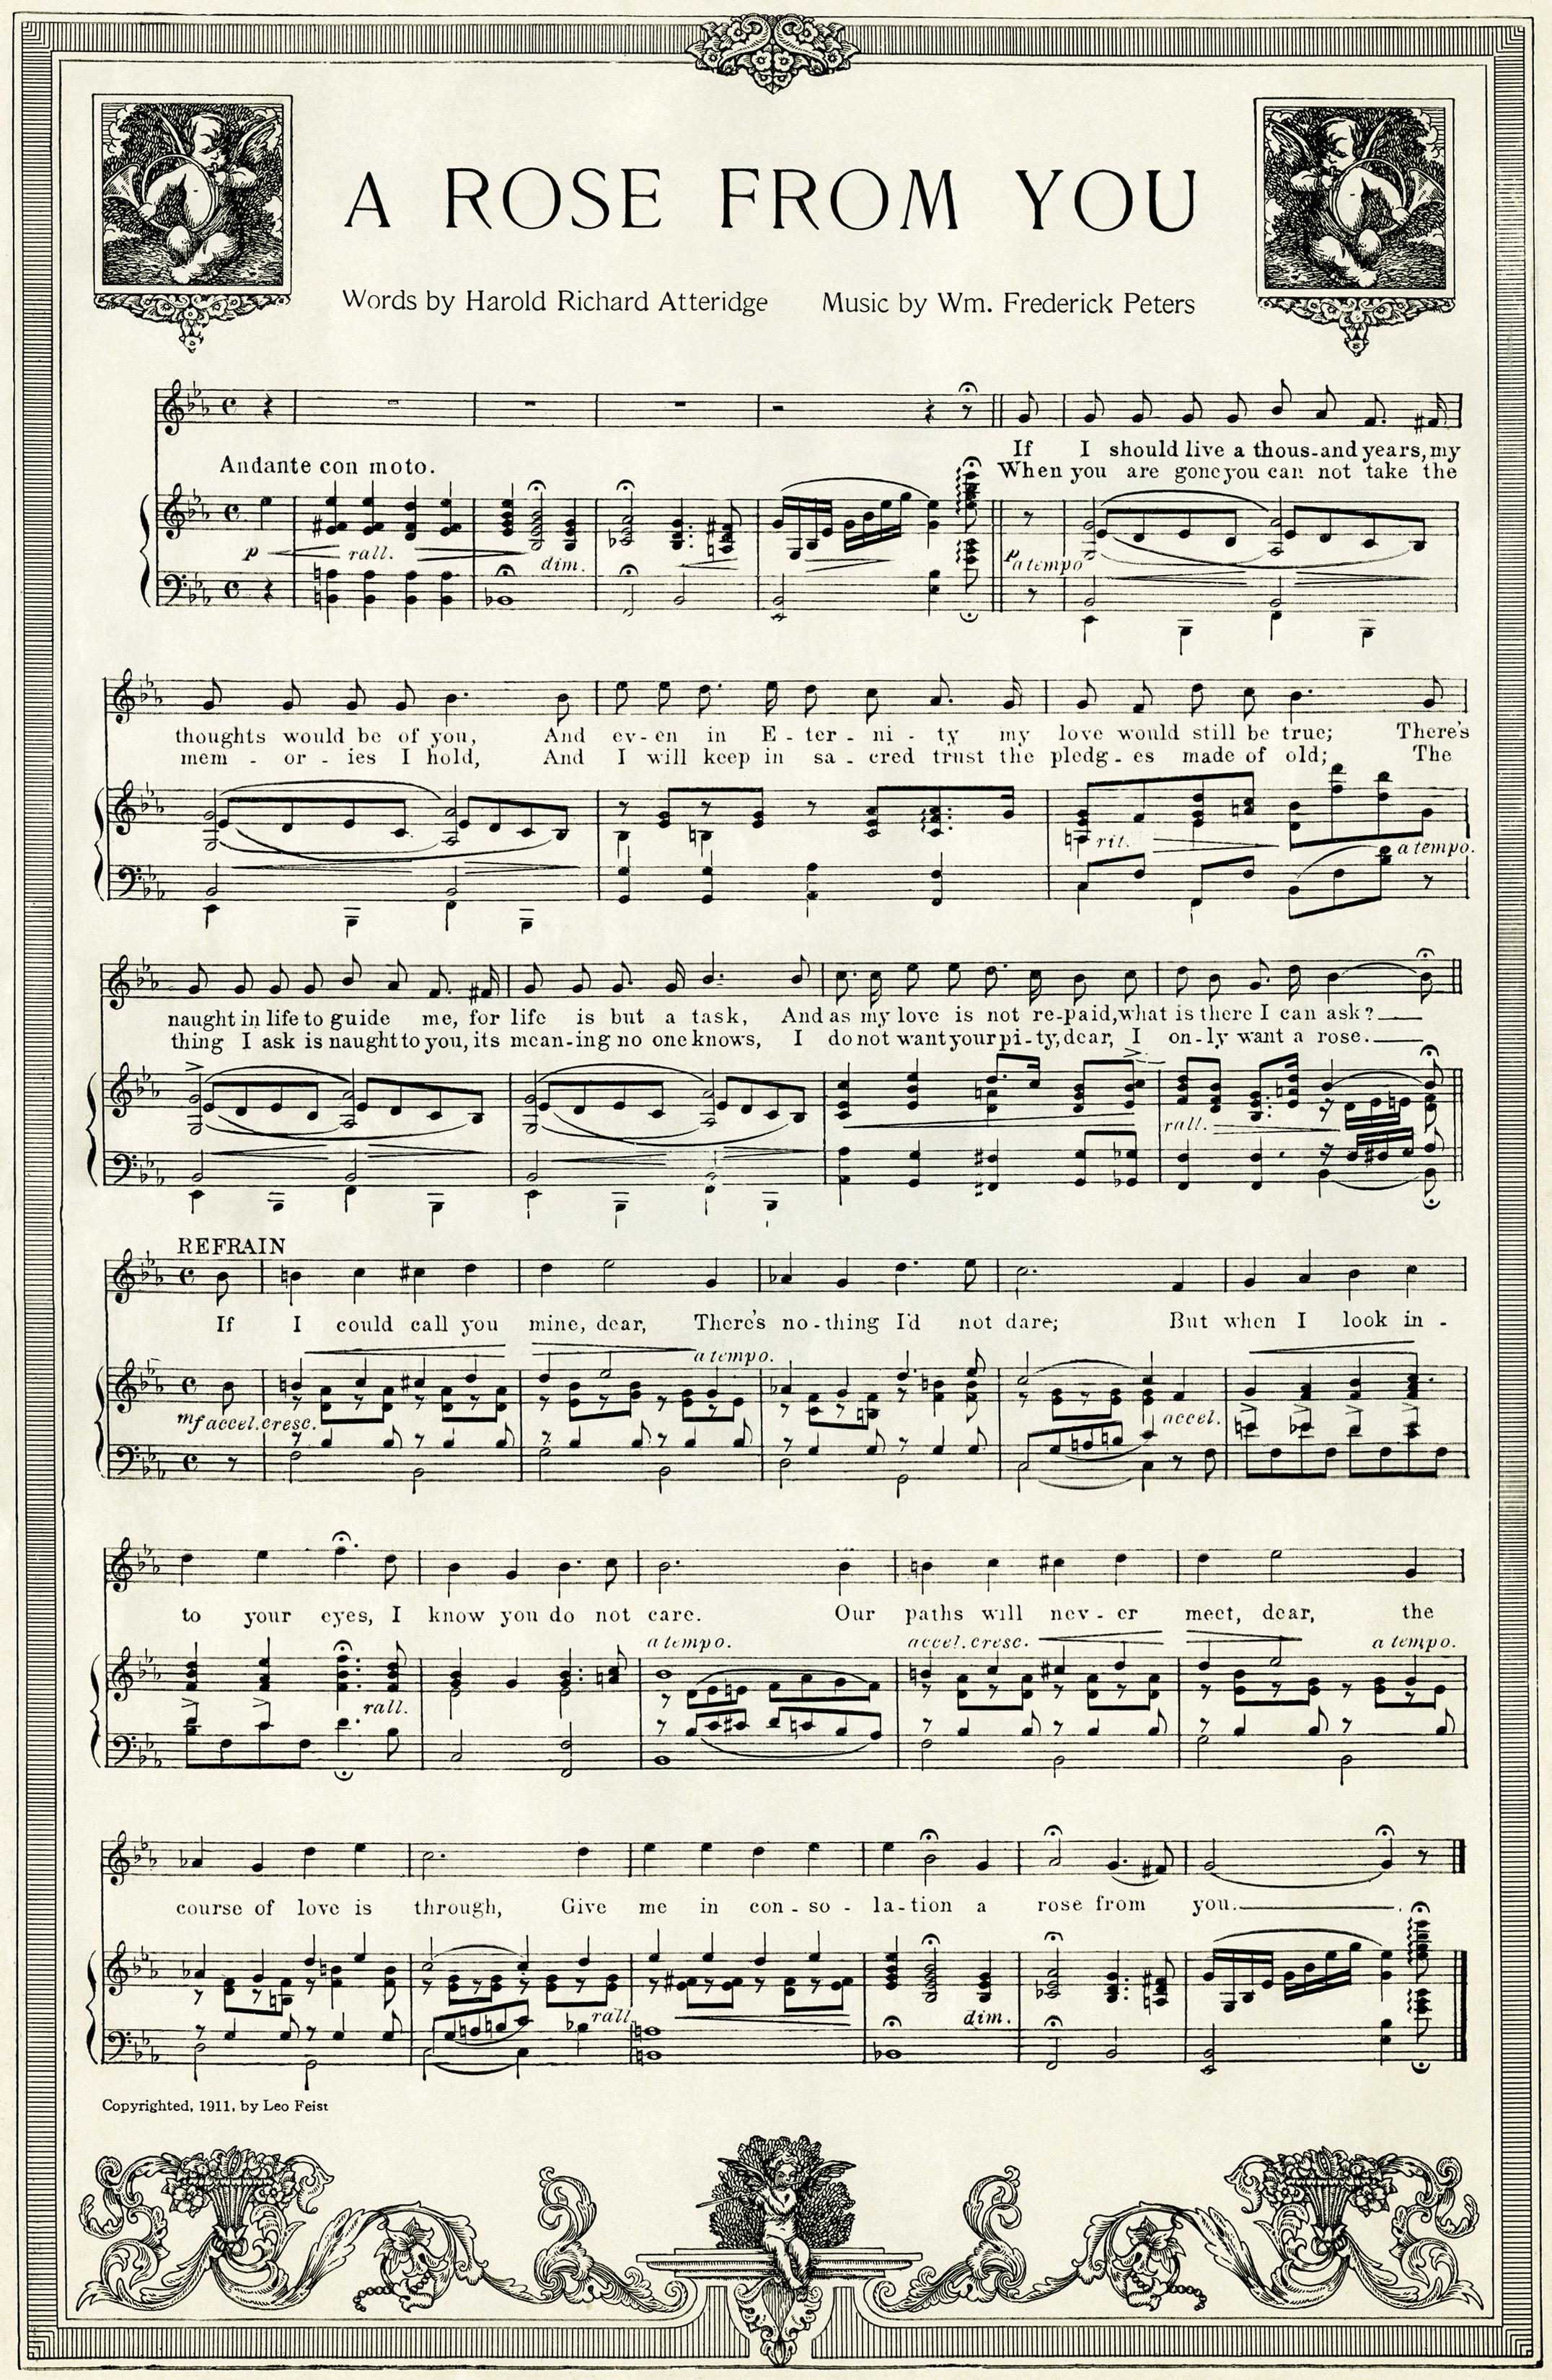 Free Vintage Image A Rose From You Sheet Music